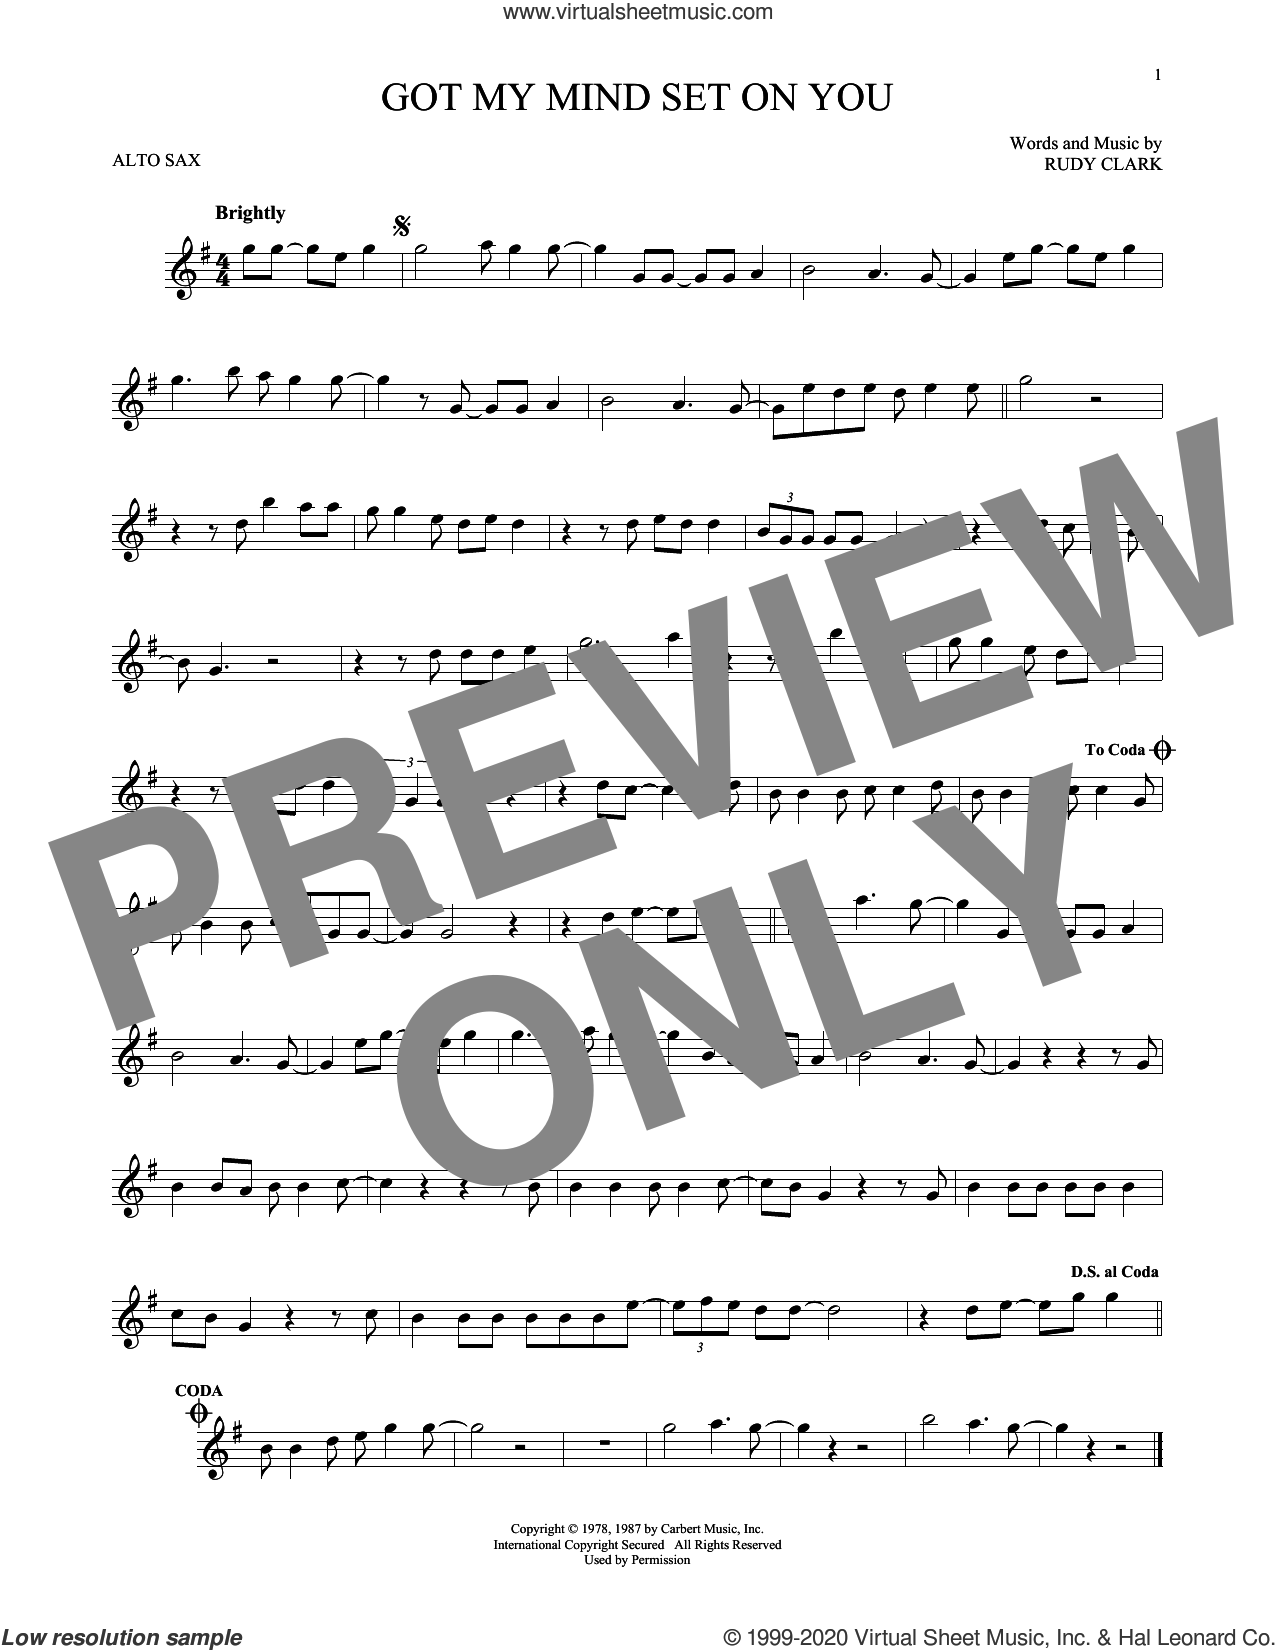 Got My Mind Set On You sheet music for alto saxophone solo by George Harrison and Rudy Clark, intermediate skill level